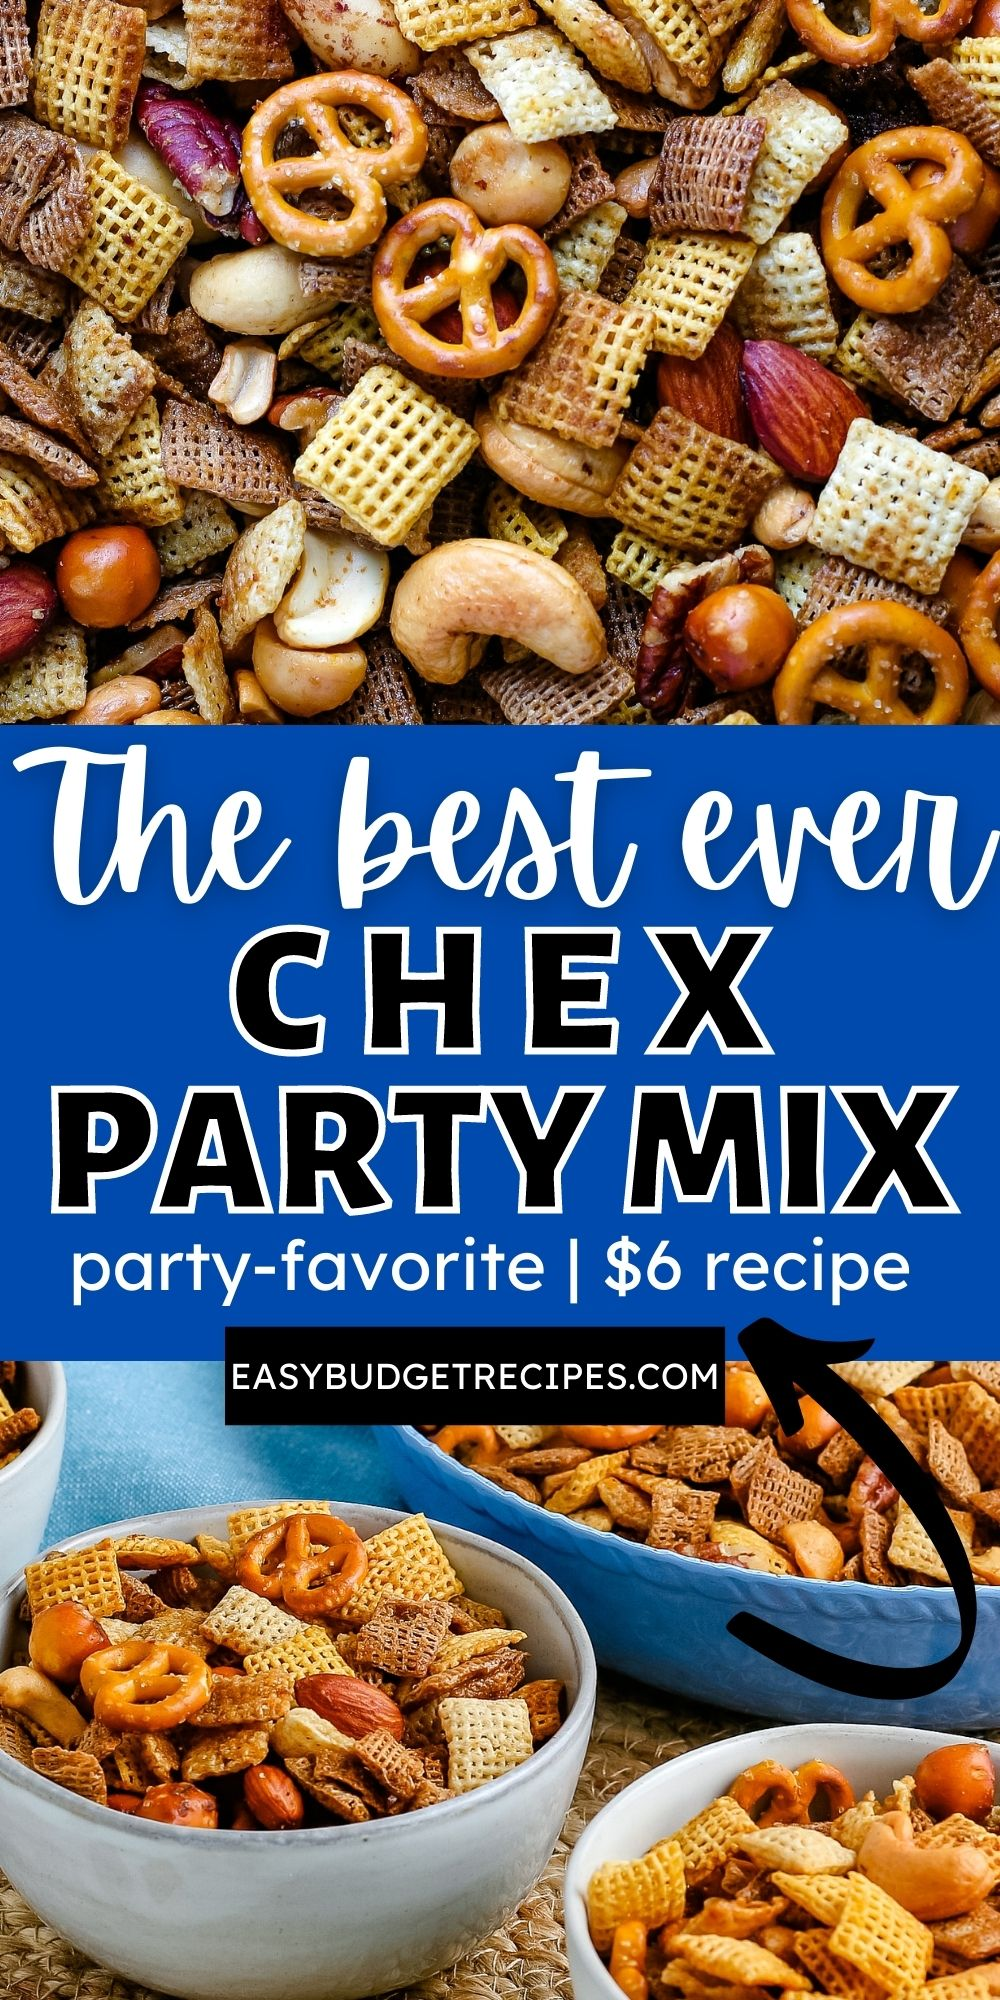 Chex Party Mix is an easy and versatile recipe that is always a party favorite. It's buttery, it's savory, and it's every bit delicious. via @easybudgetrecipes